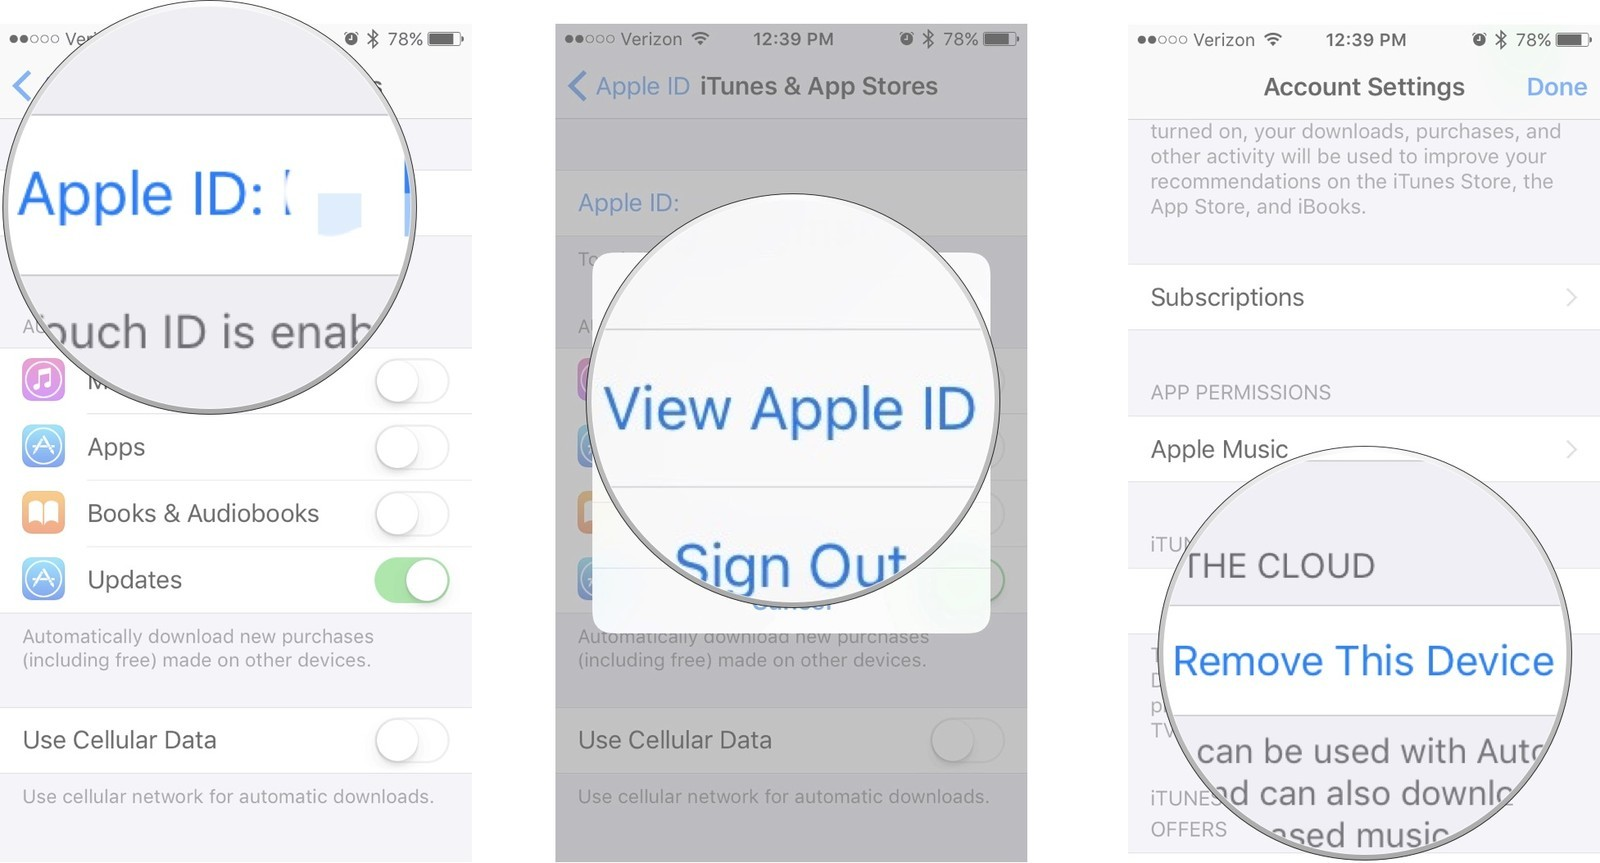 Tap your Apple ID, then tap View Apple ID, then tap Remove This Device